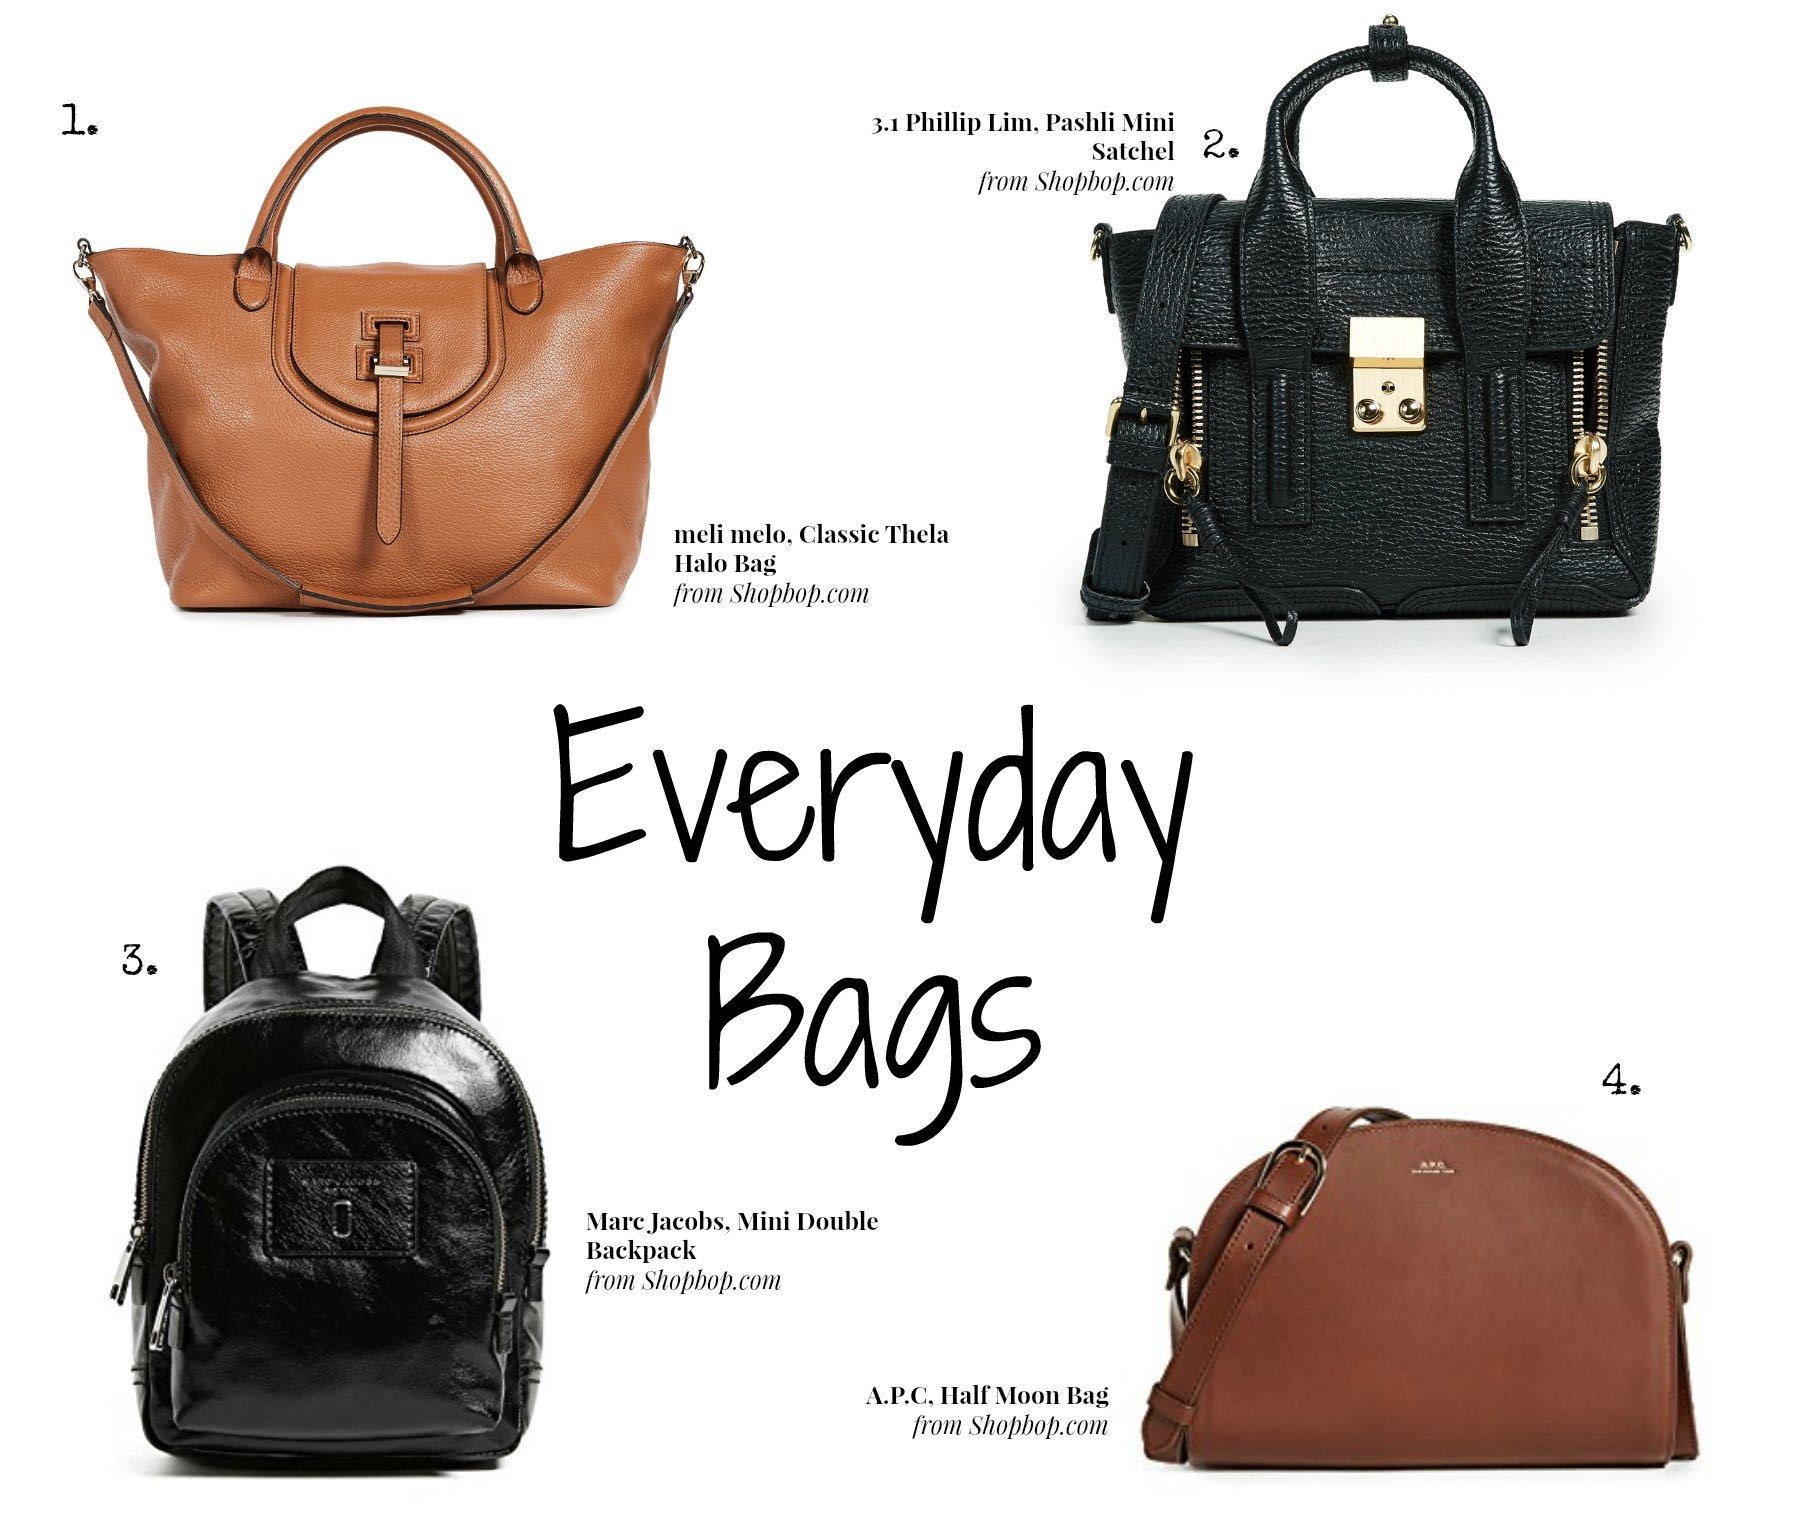 Shopbop Sale - Everyday Bags